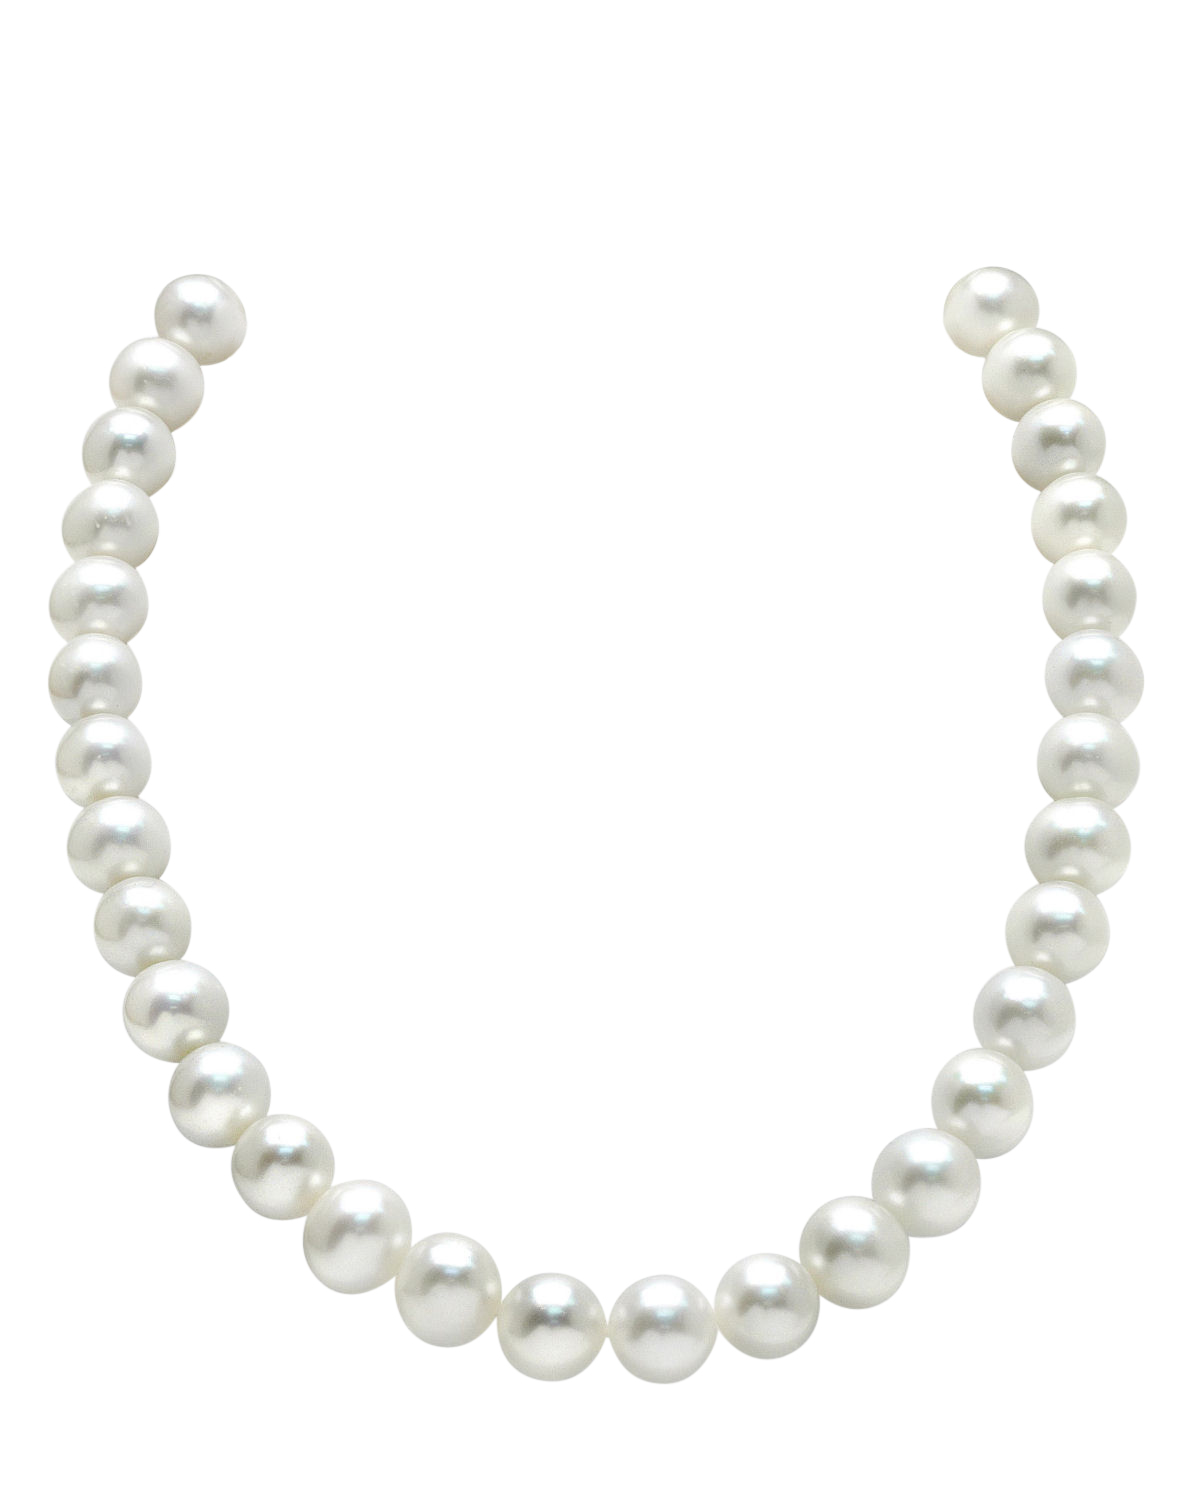 11-12mm White Freshwater Pearl Necklace- AAAA Quality